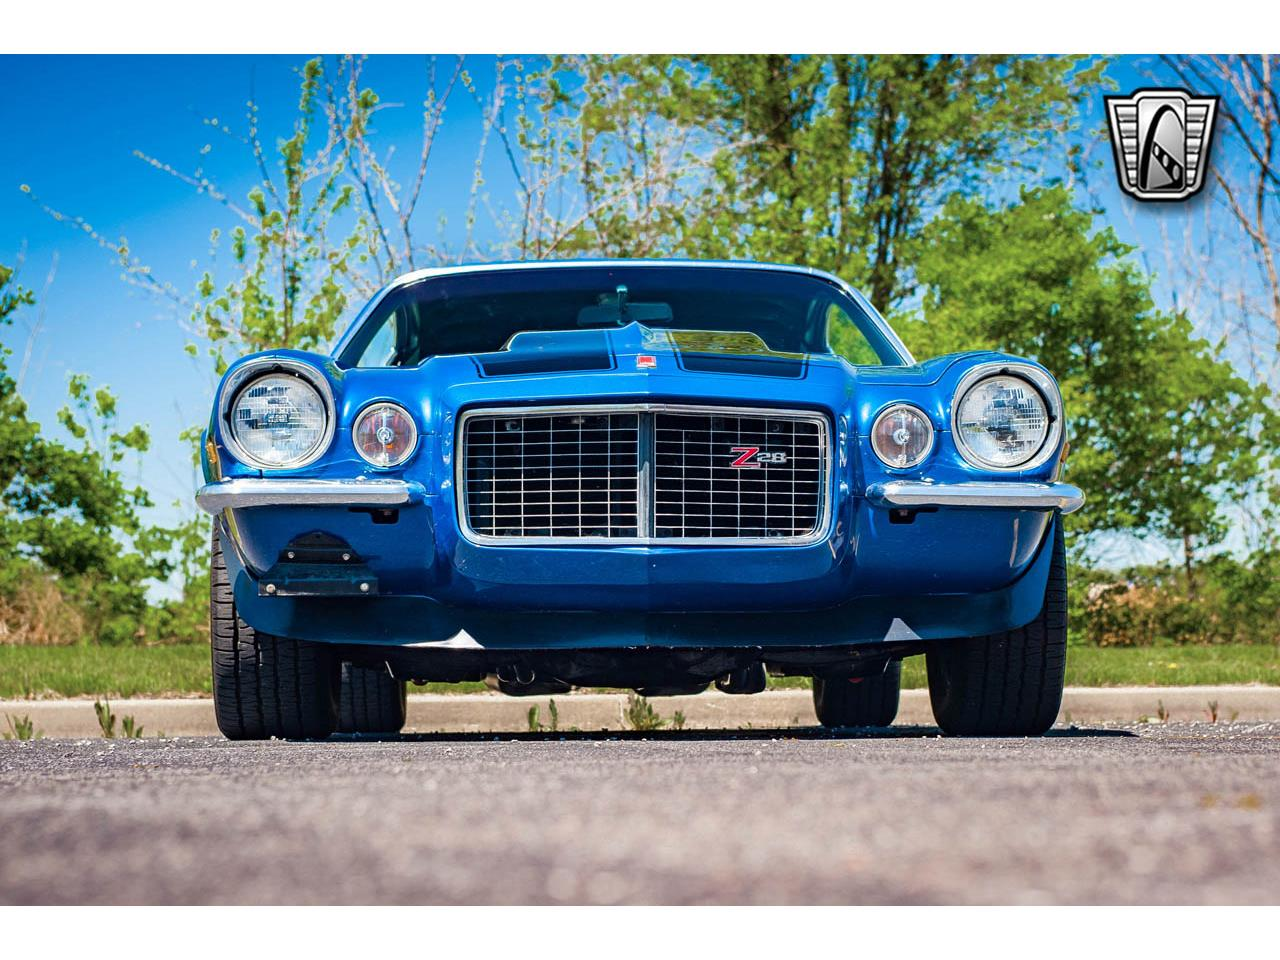 Large Picture of 1971 Camaro located in O'Fallon Illinois - $35,995.00 Offered by Gateway Classic Cars - St. Louis - QB8S